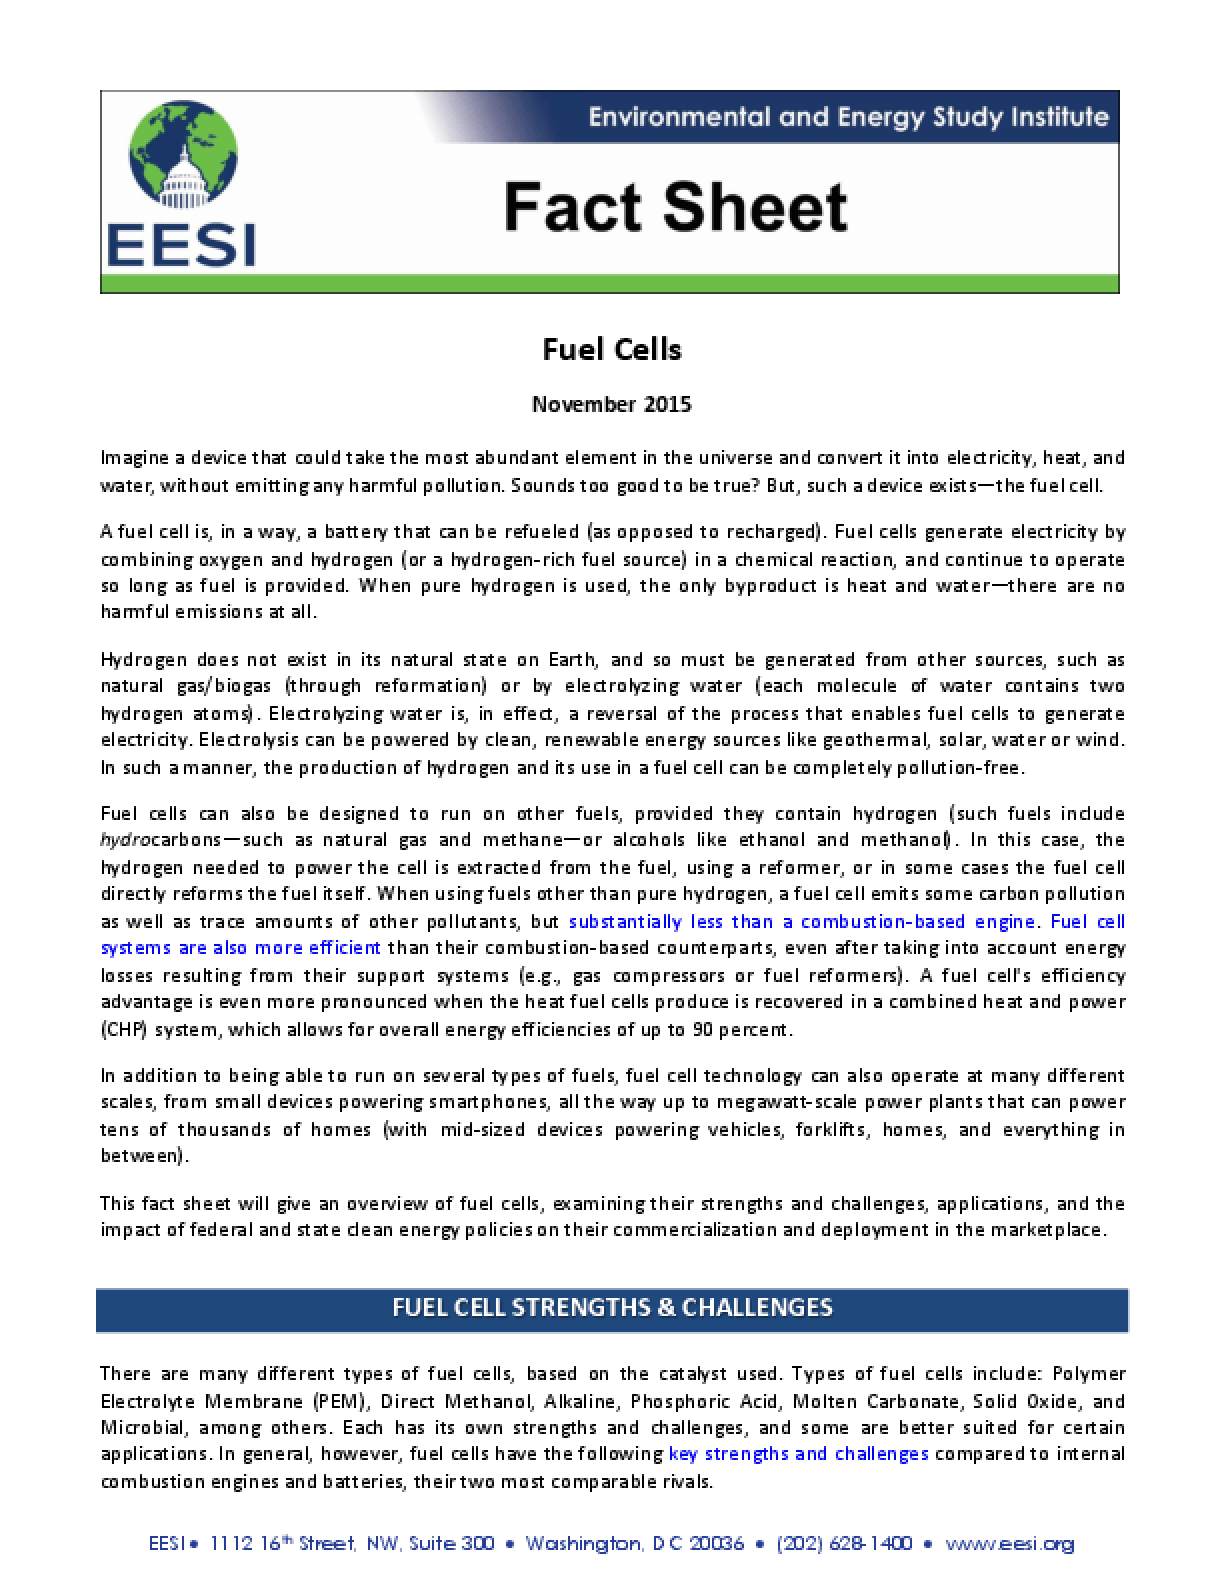 Fact Sheet: Fuel Cells